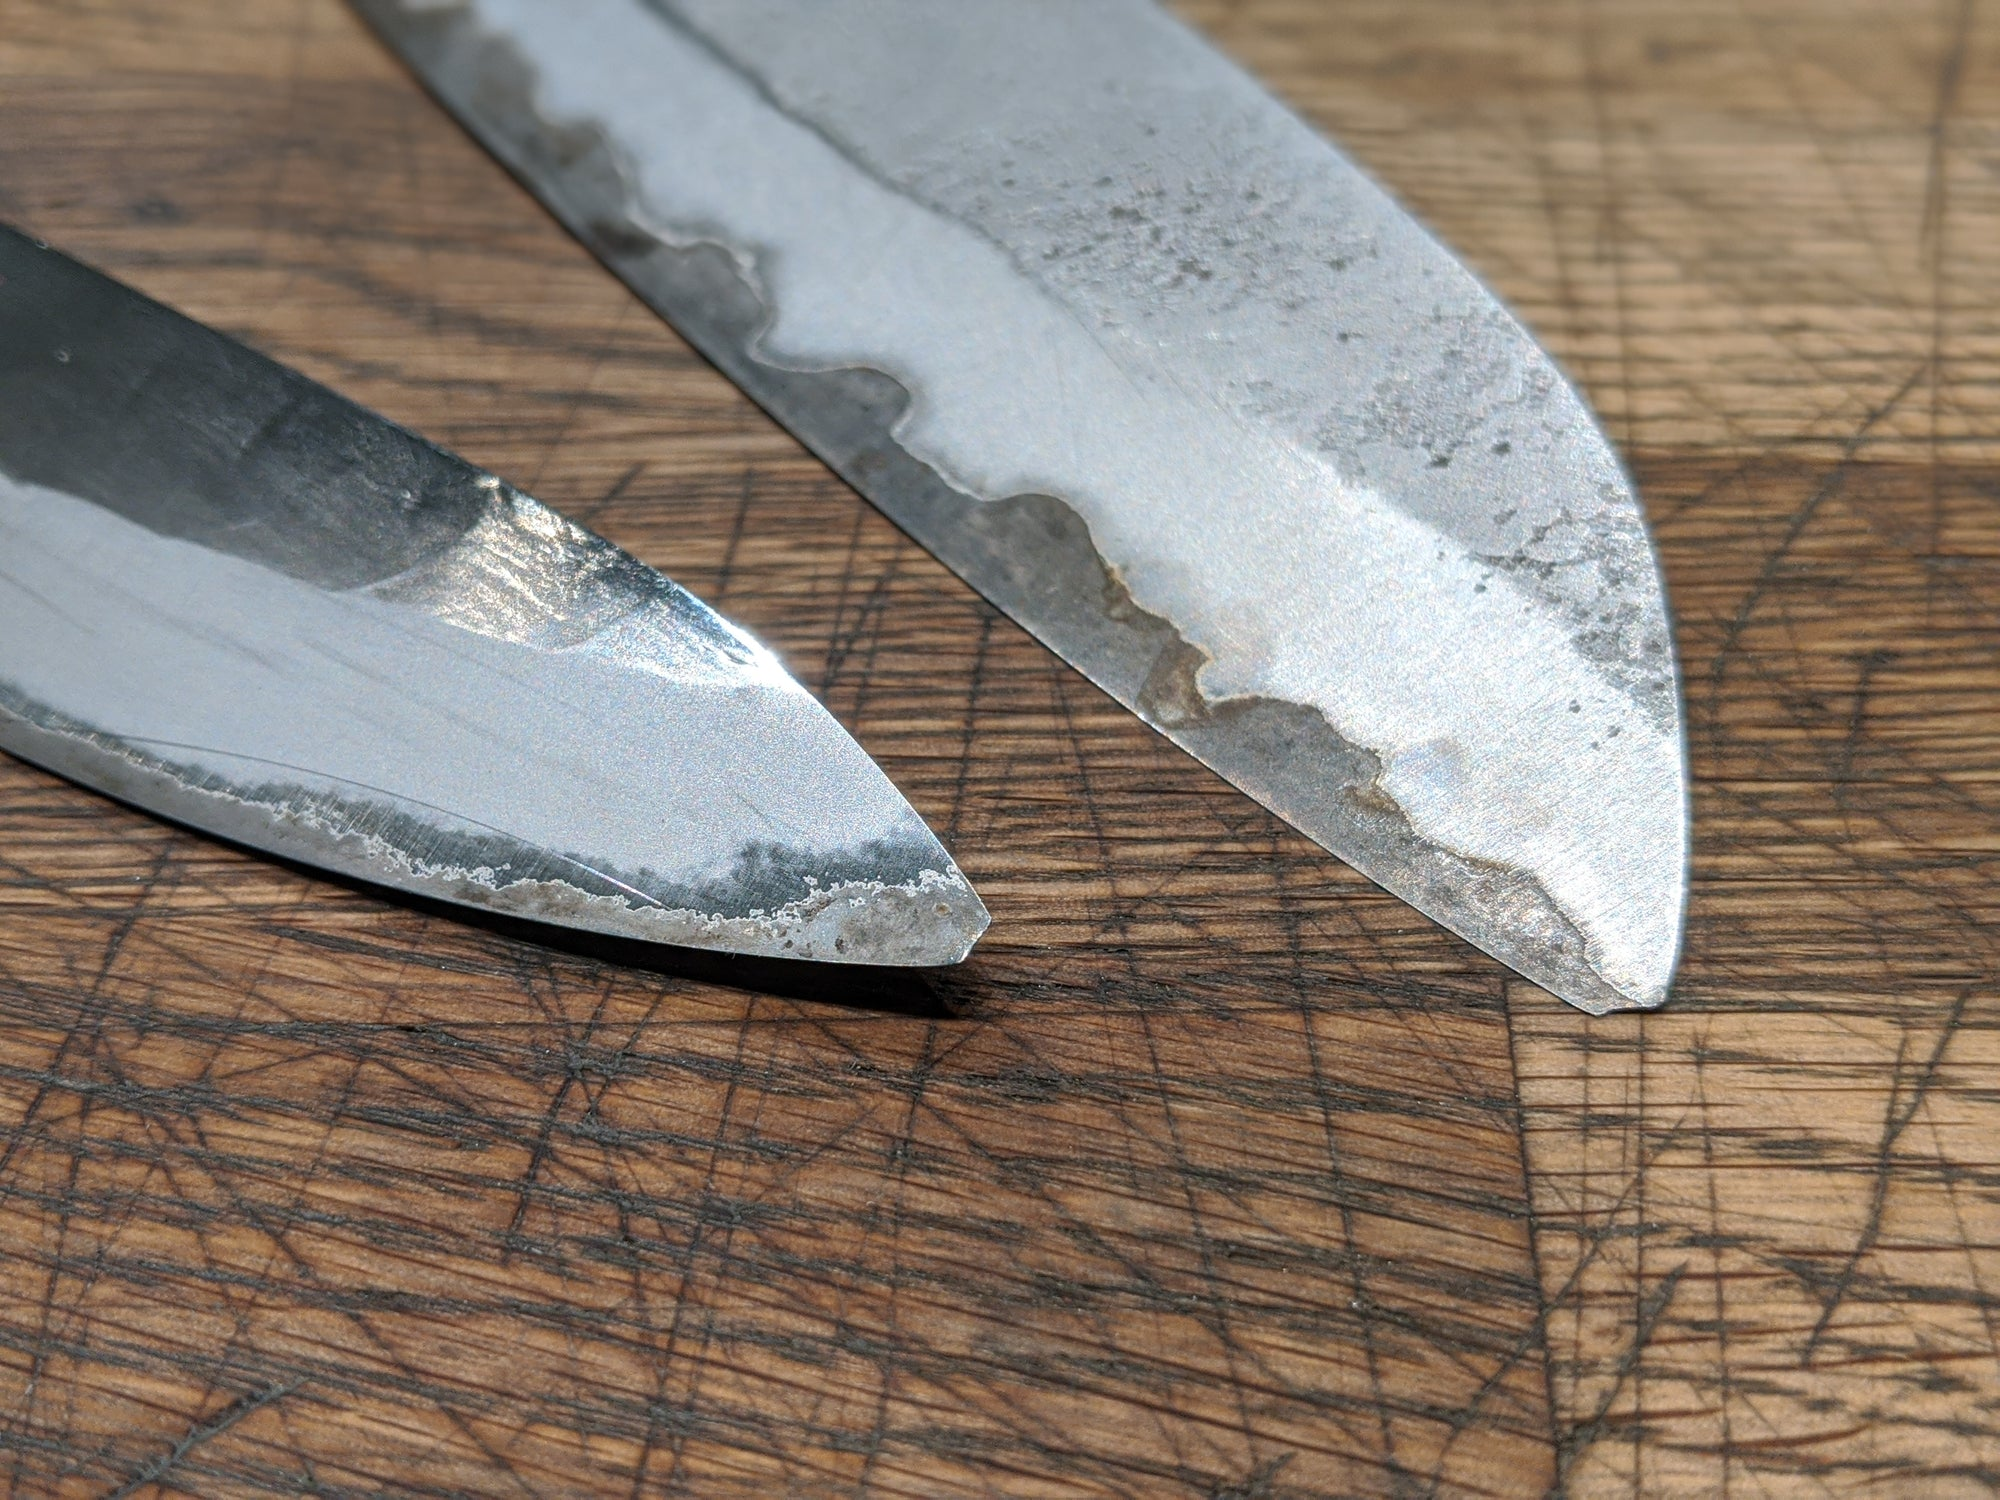 How to Fix Your Broken Knife Tip